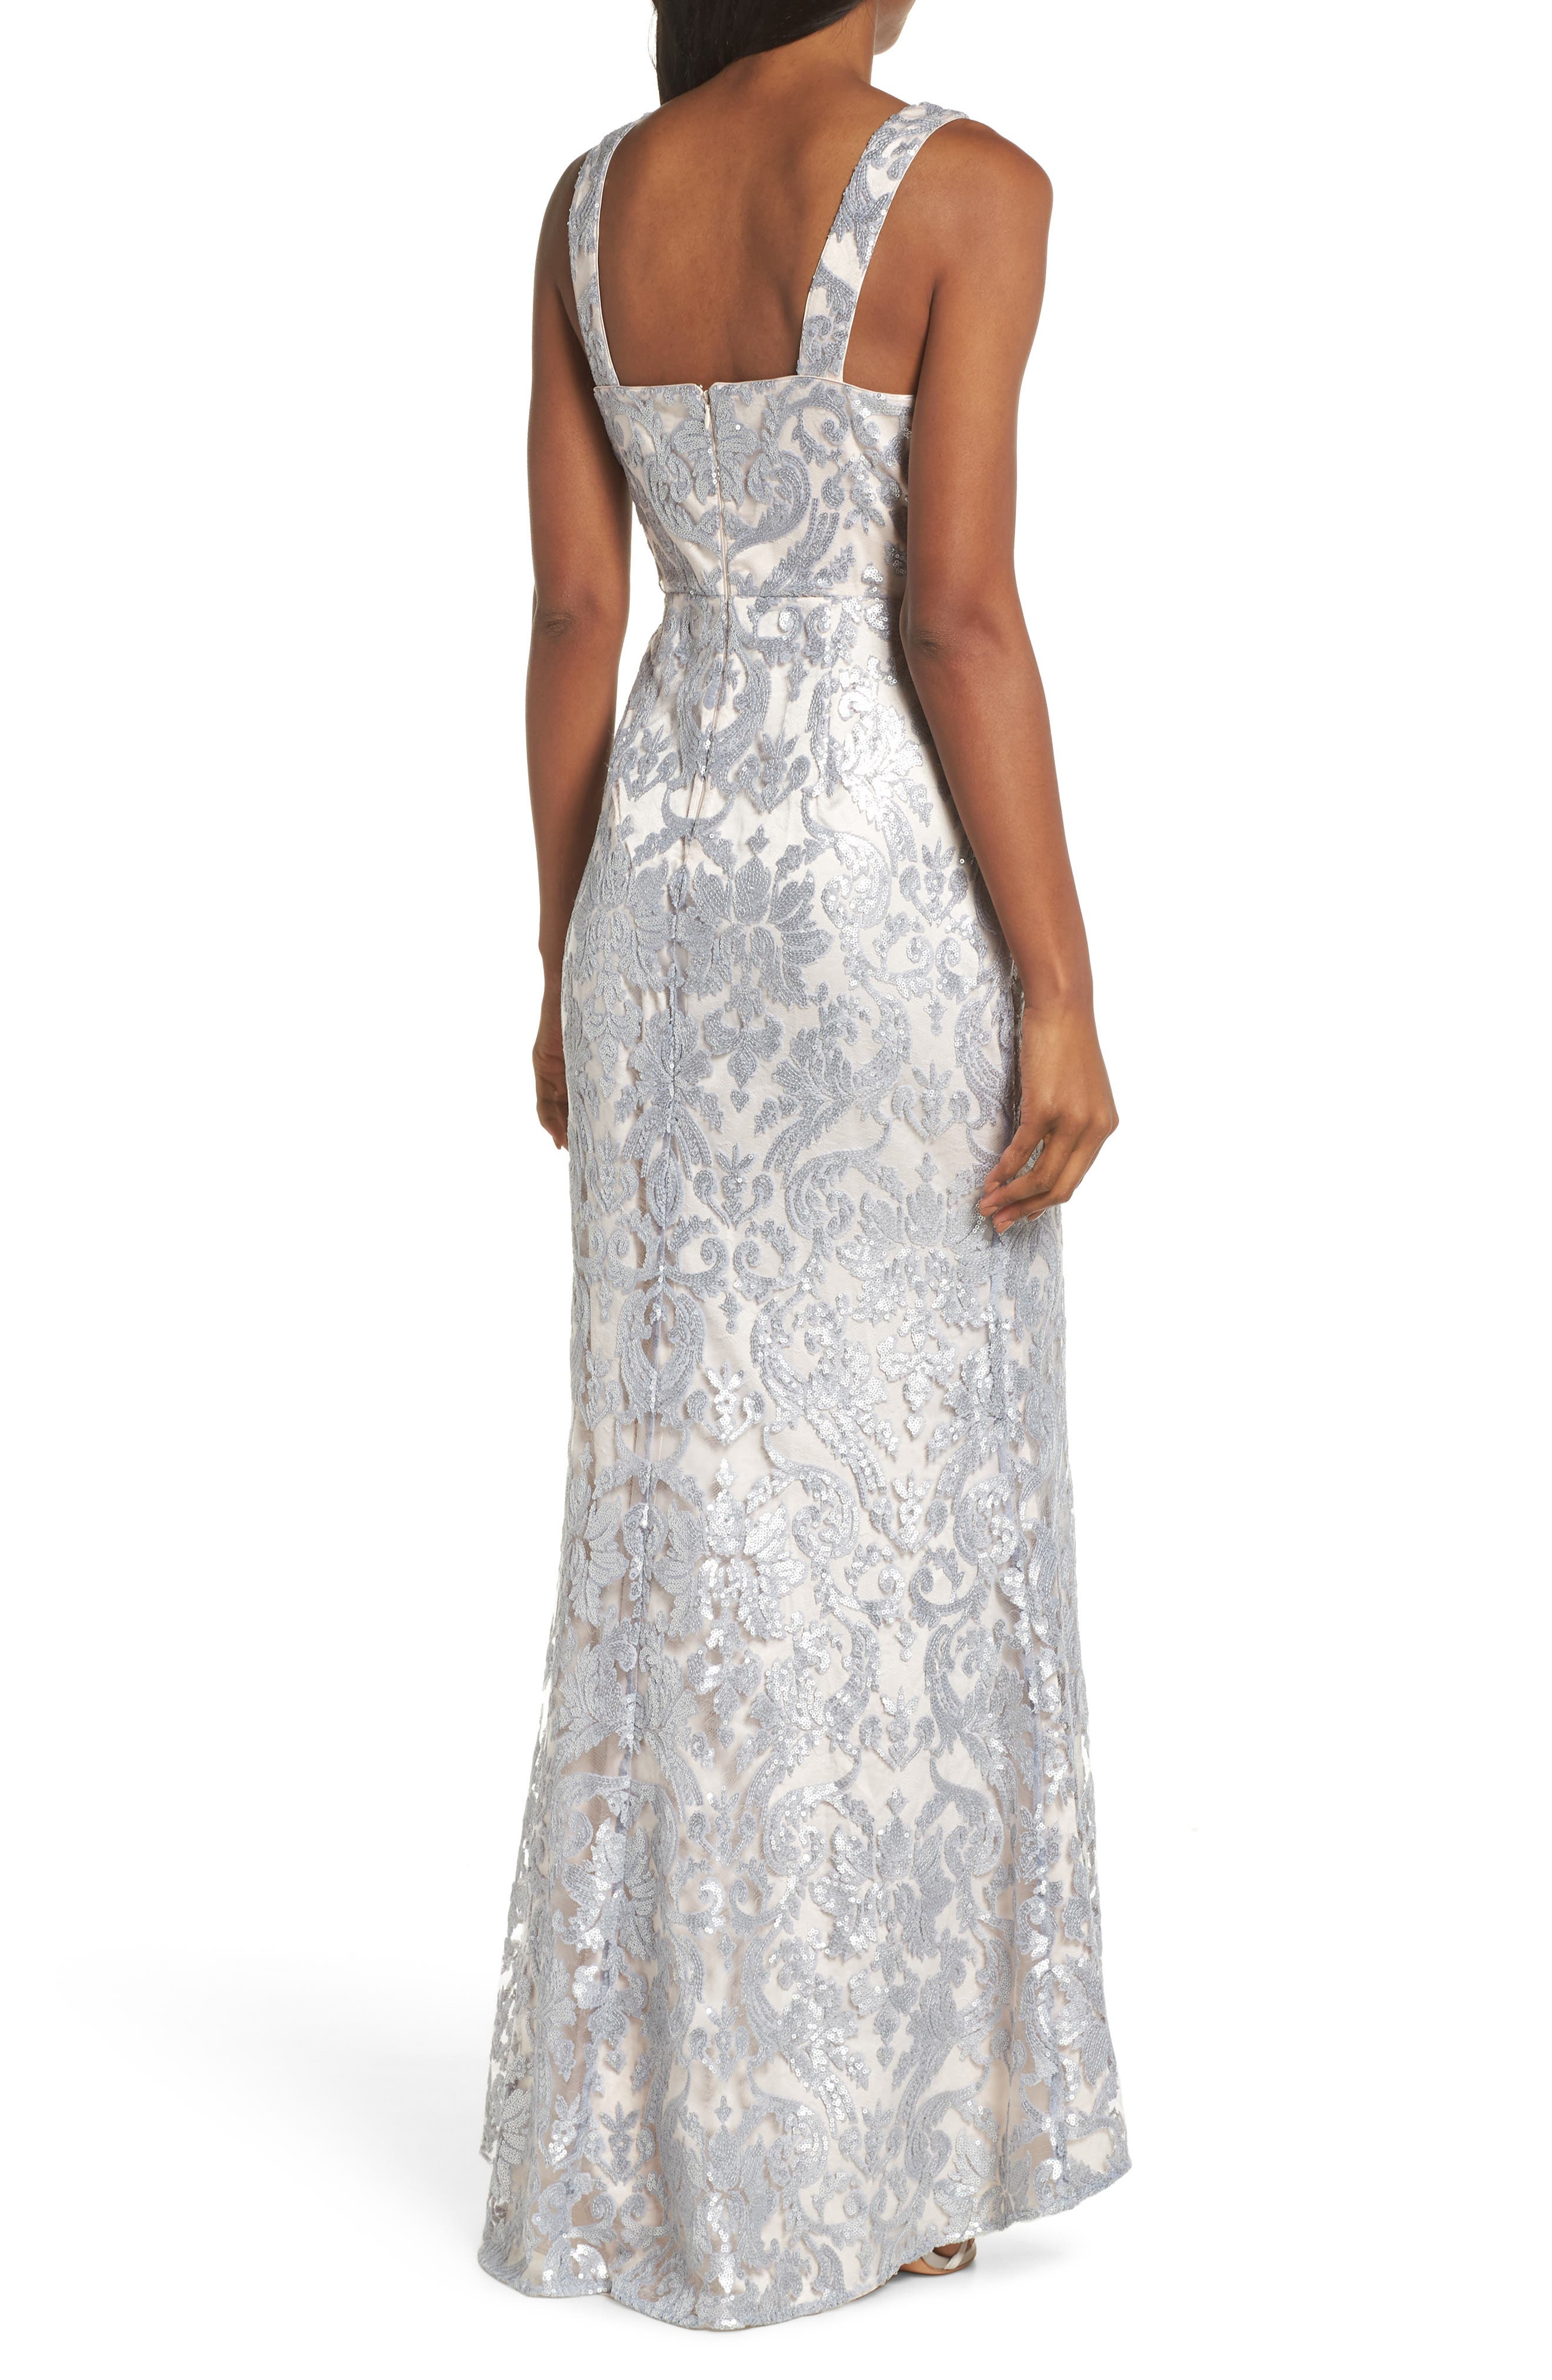 ELIZA J,                             Embroidered Evening Dress,                             Alternate thumbnail 2, color,                             SILVER